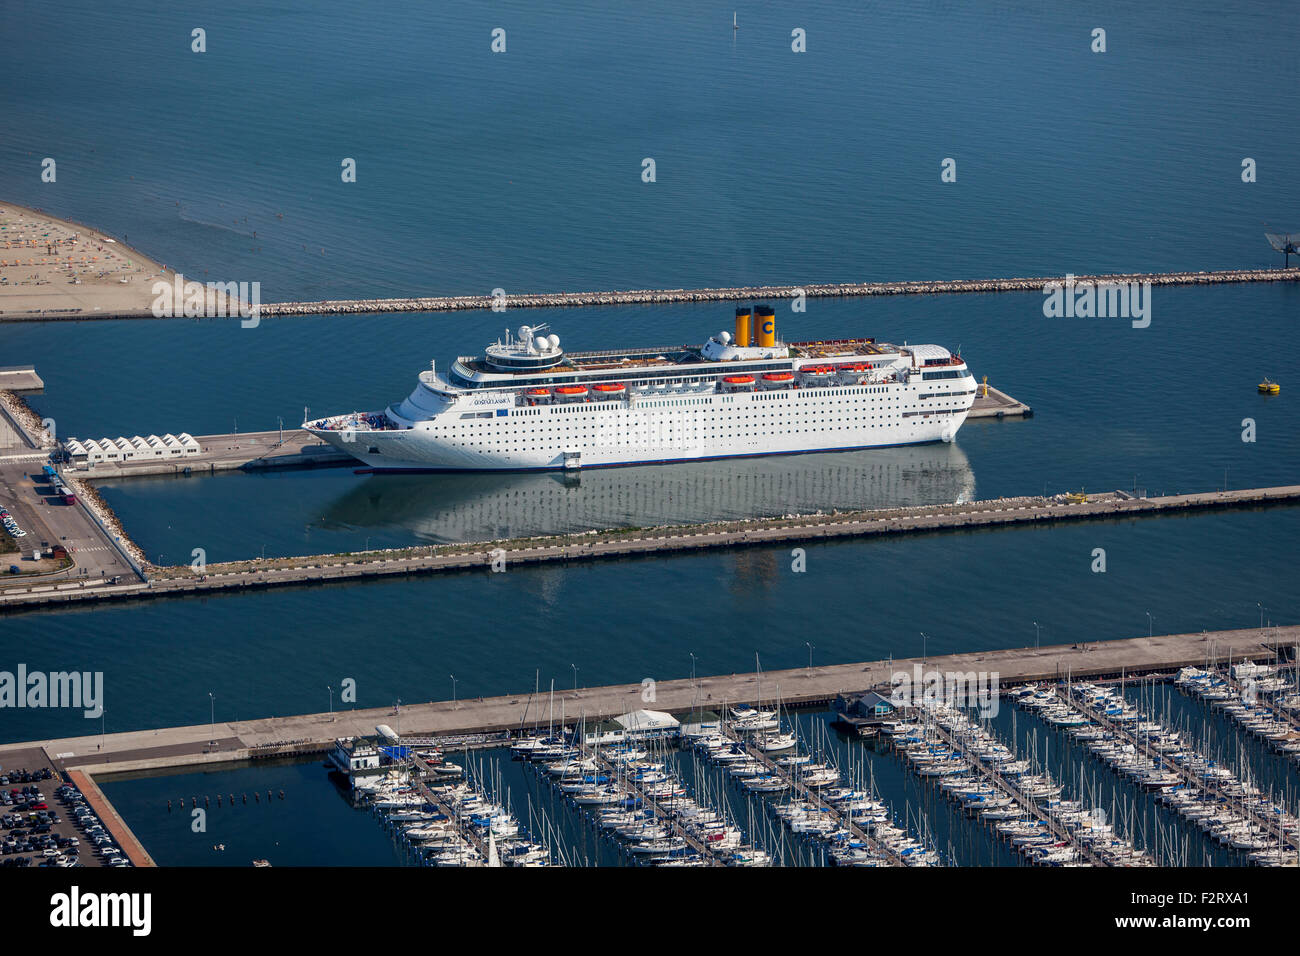 Passenger Ship Moored in Harbor Aerial View - Stock Image